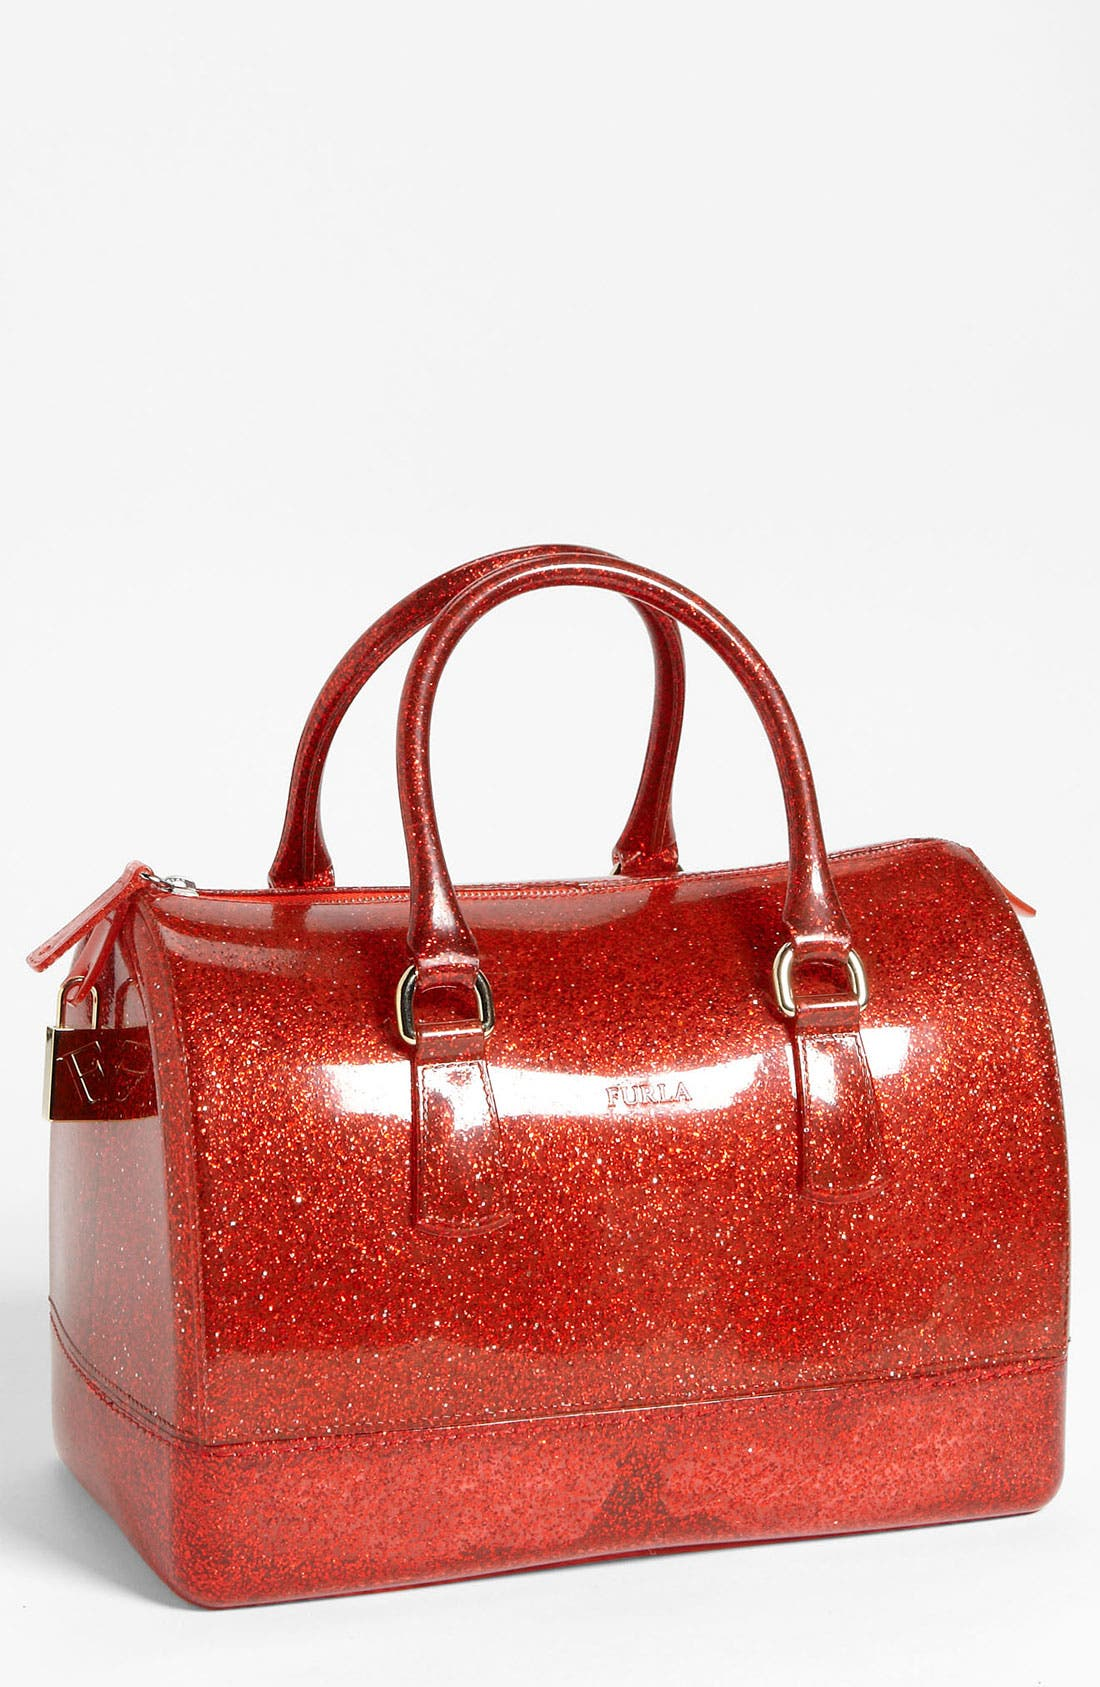 Main Image - Furla 'Candy - Glitter' Rubber Satchel